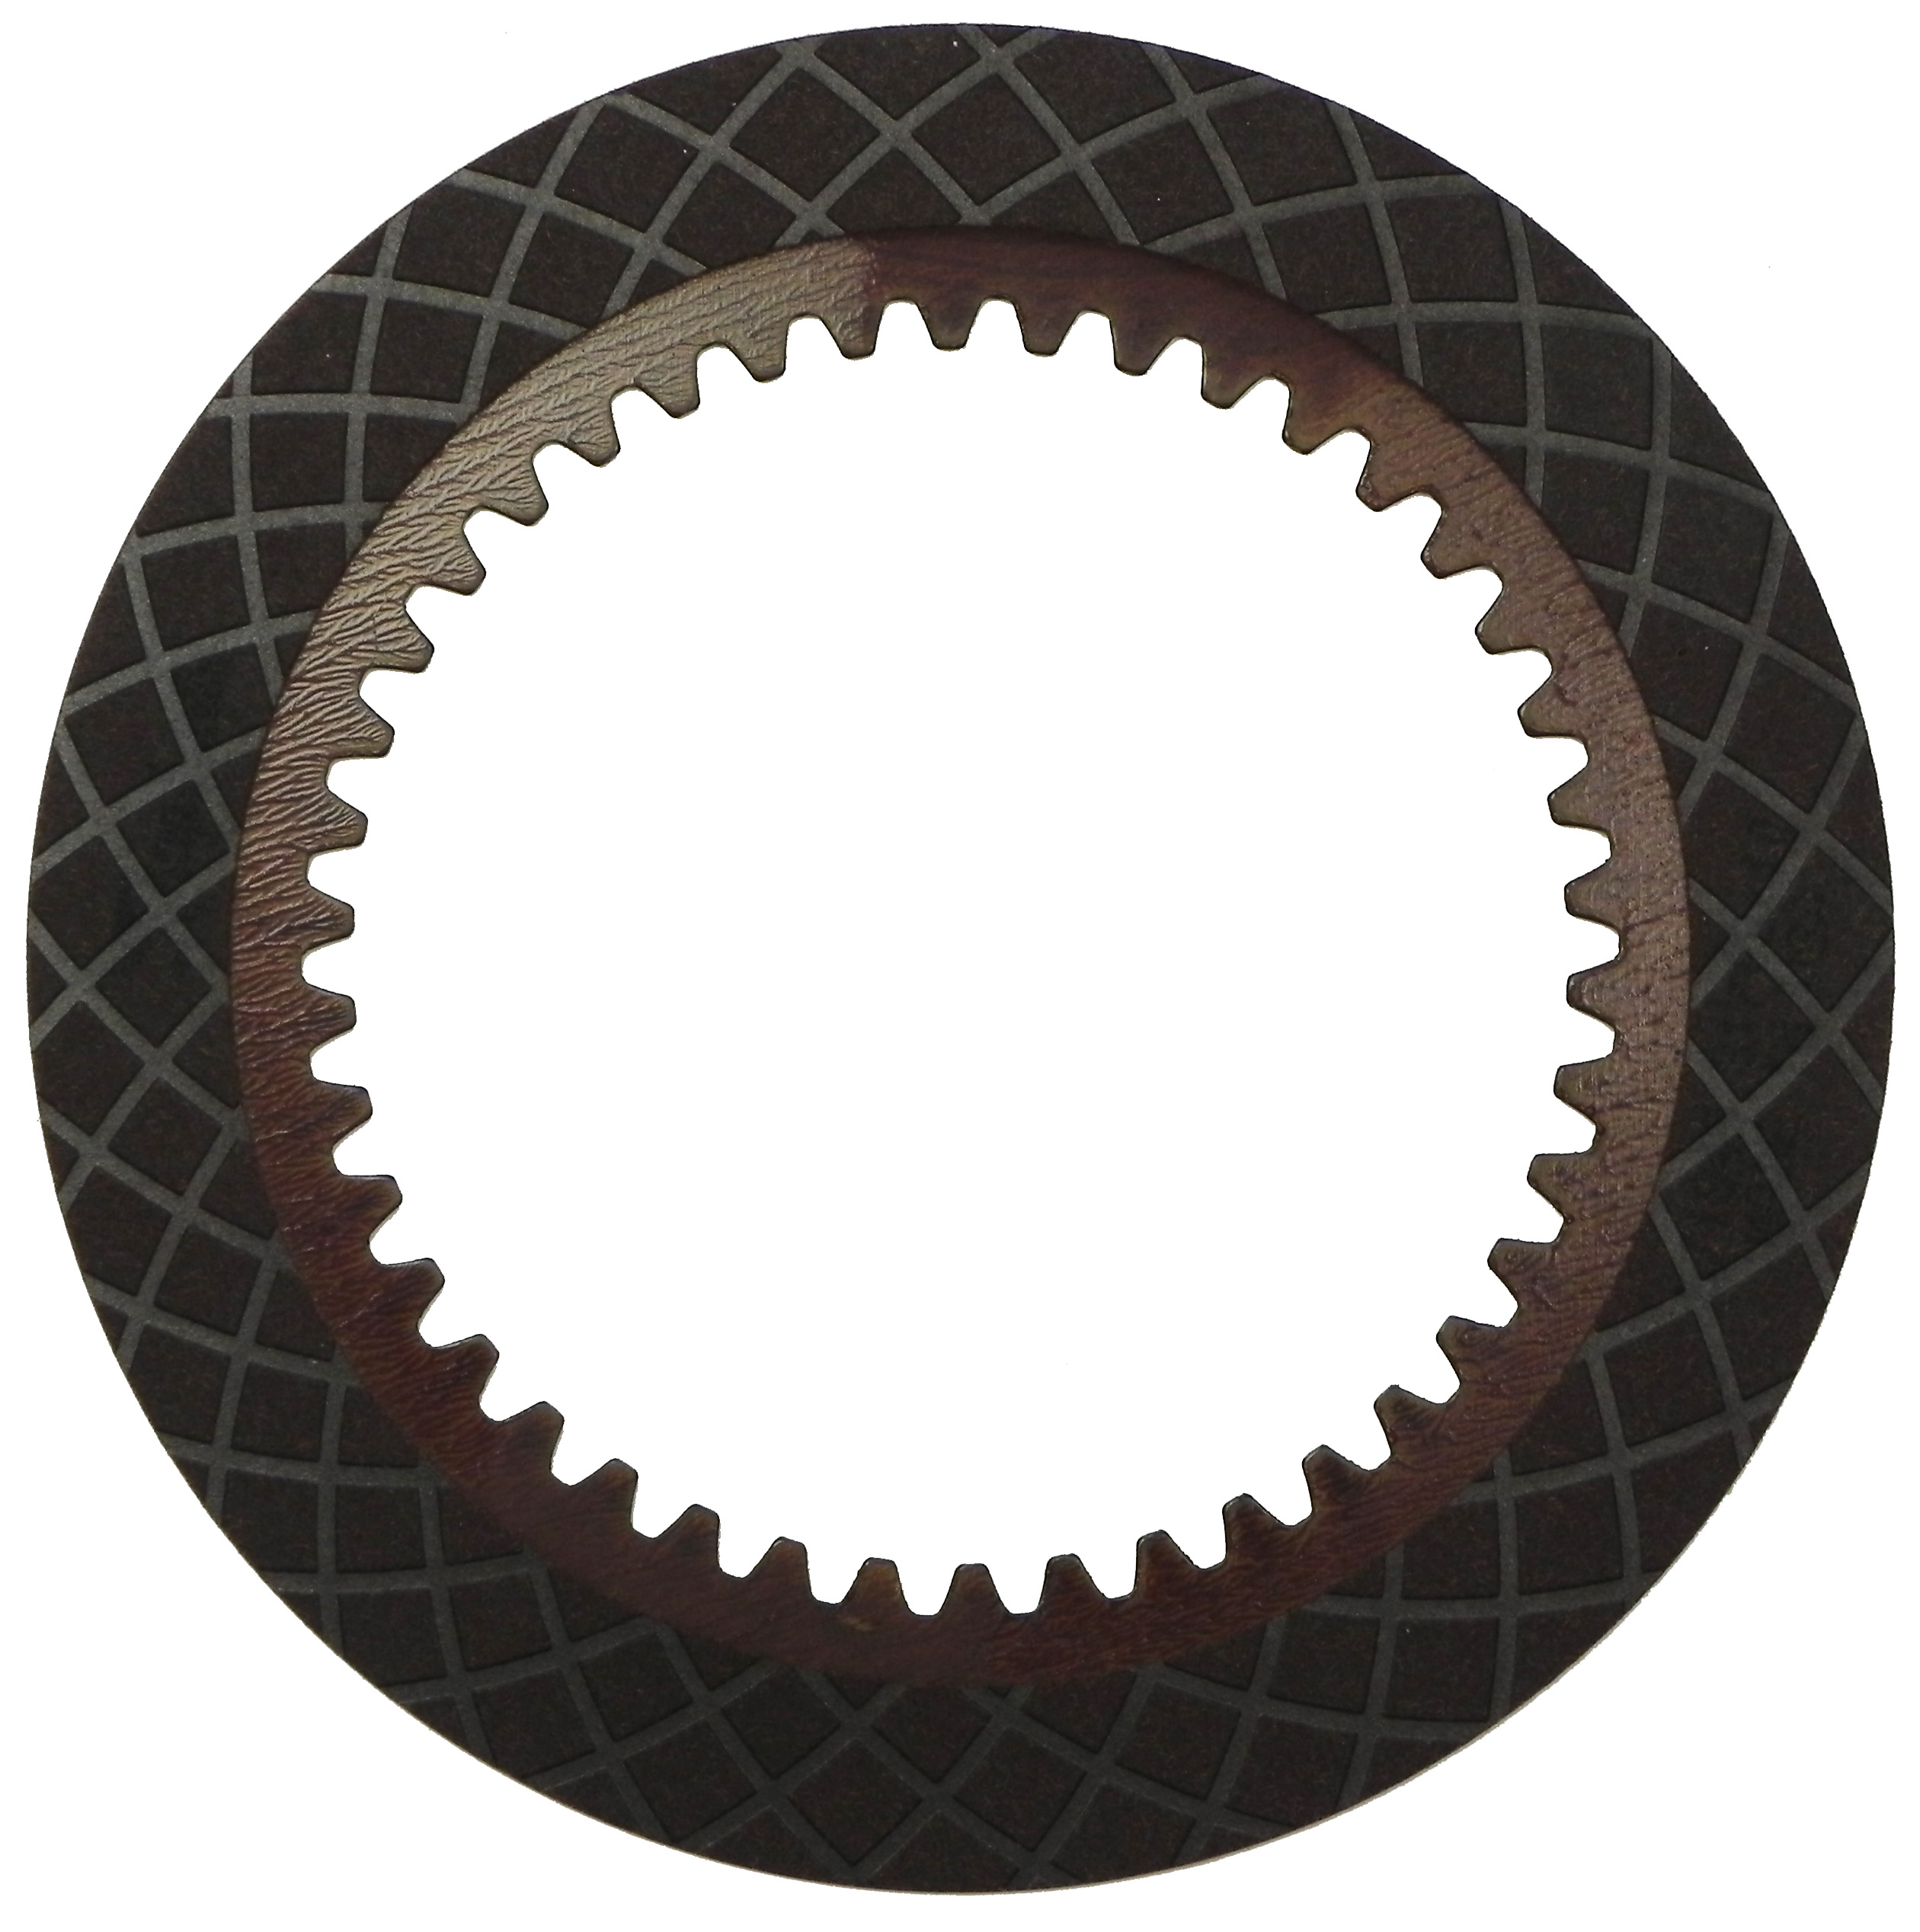 R571845 | 2001-2005 Friction Clutch Plate GPX 3rd GPX